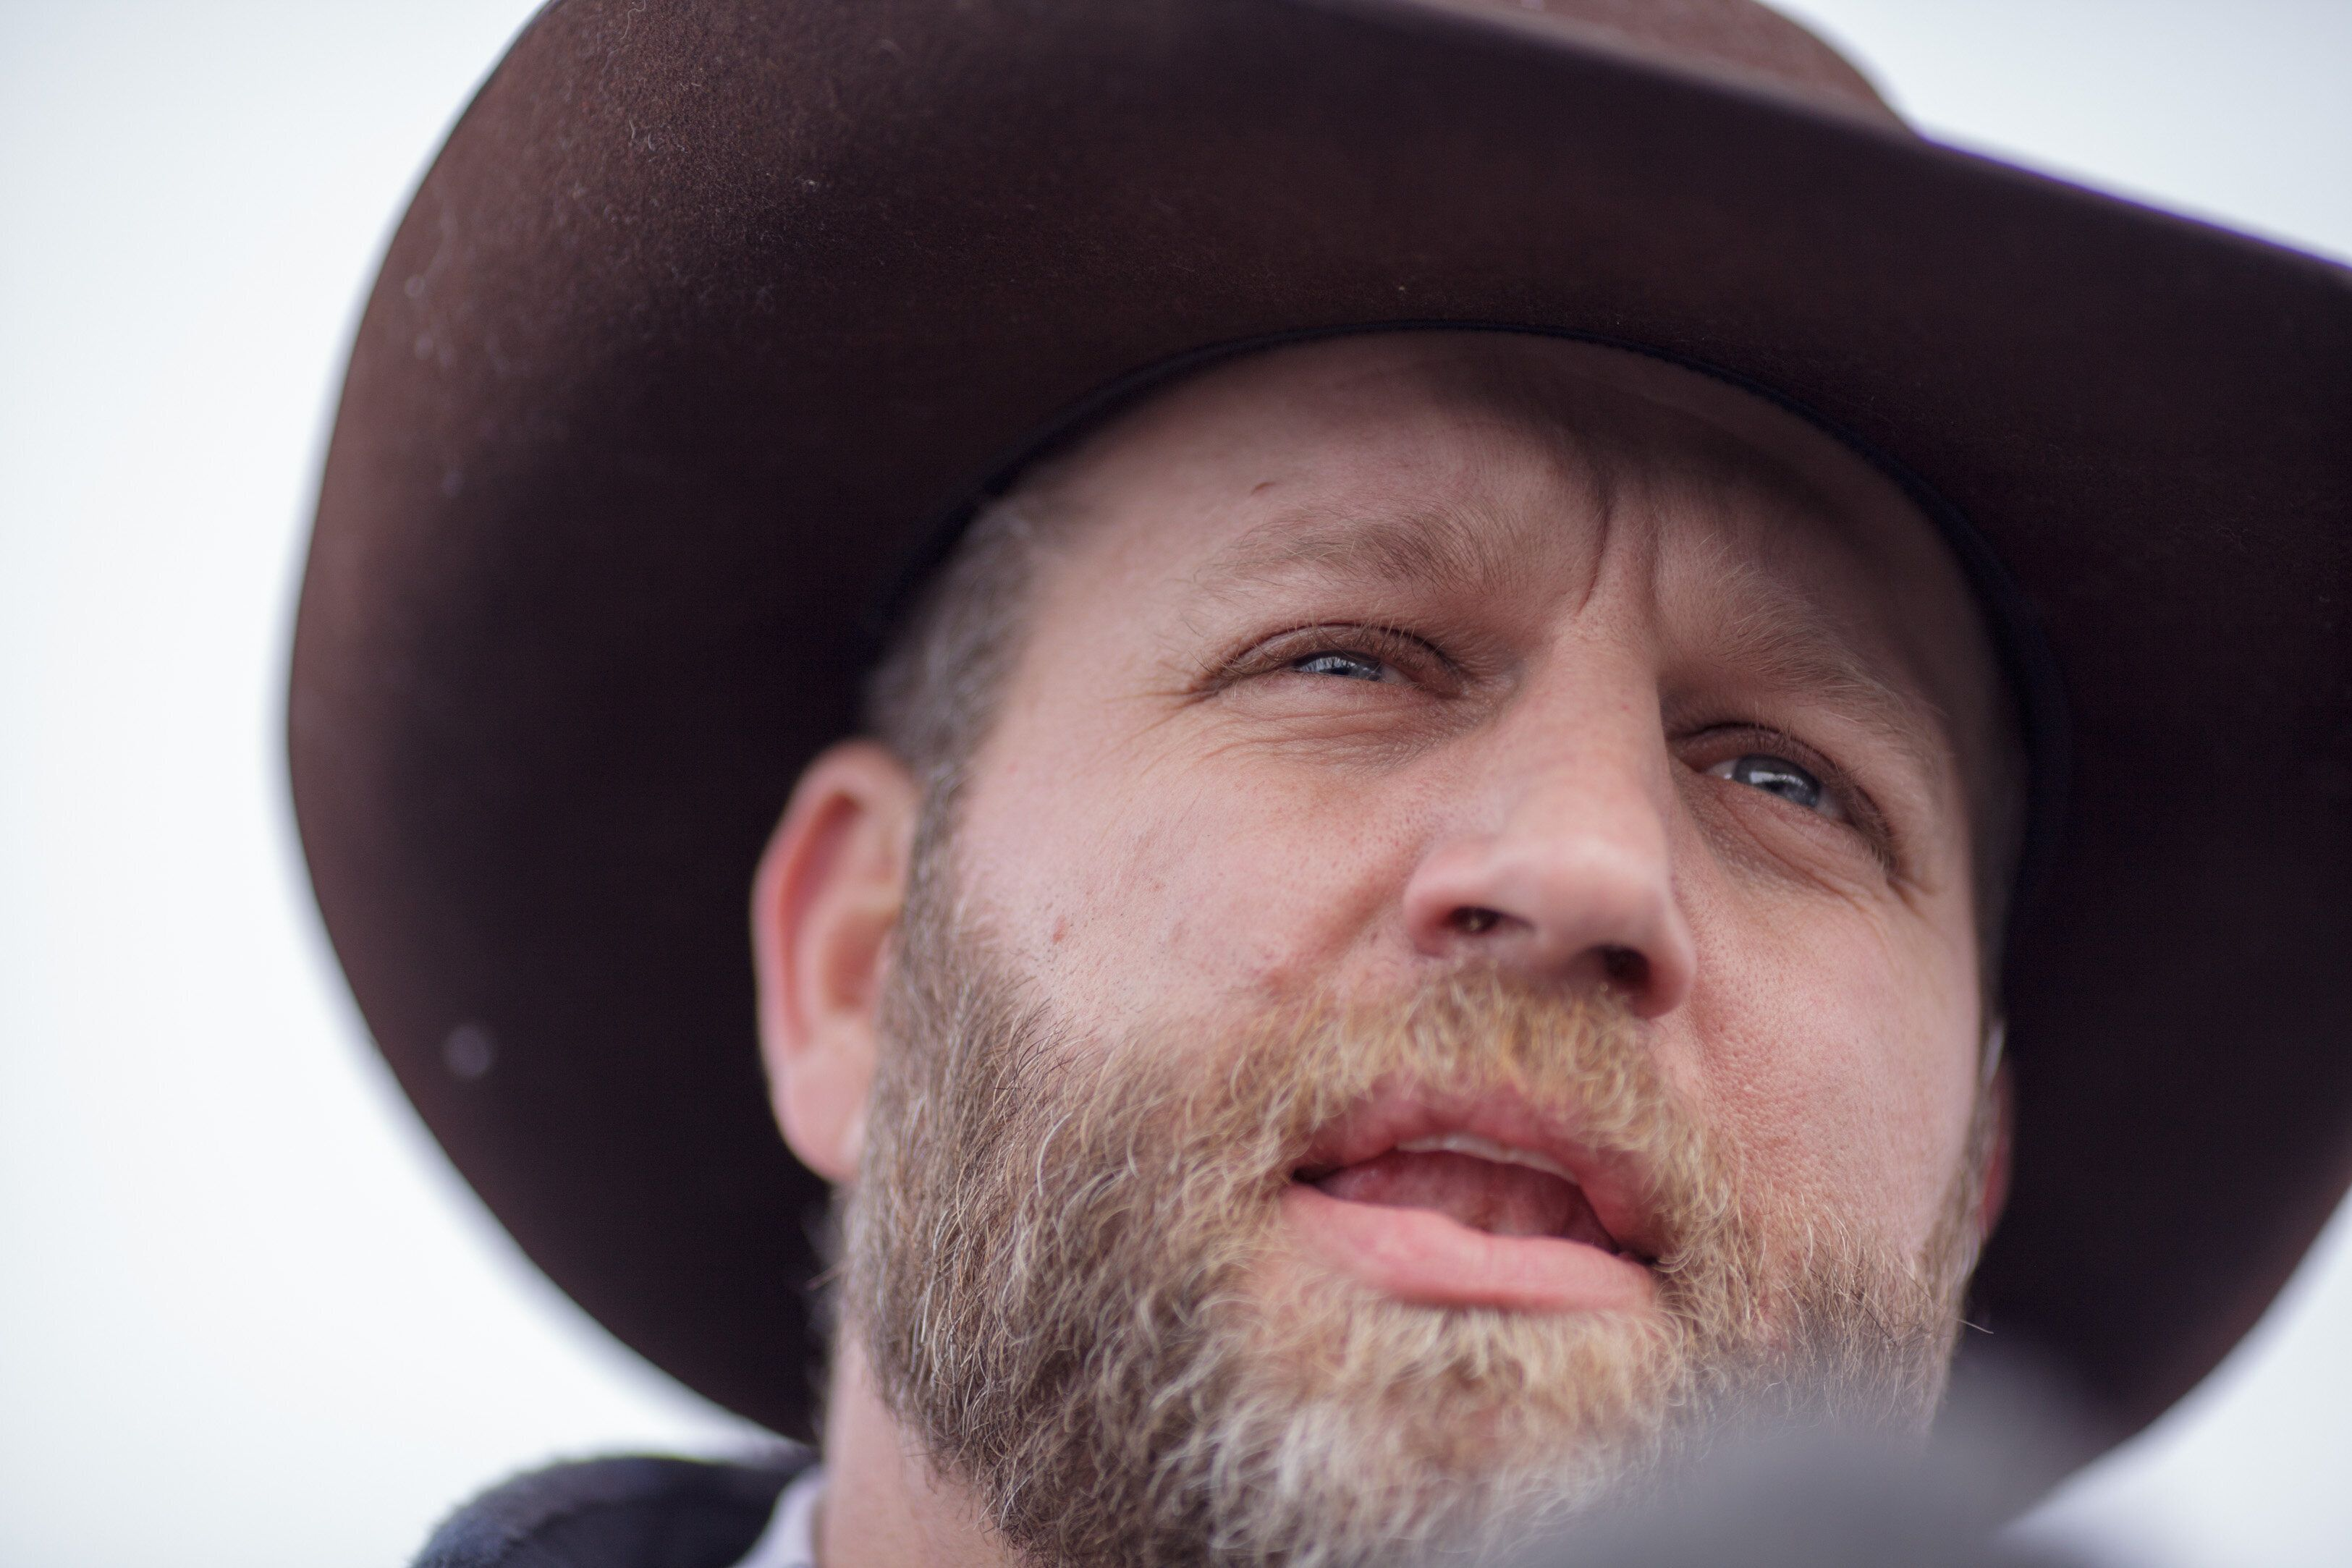 Anti-government agitator Ammon Bundy, who took over Oregon's Malheur National Wildlife Refuge with a band of followers